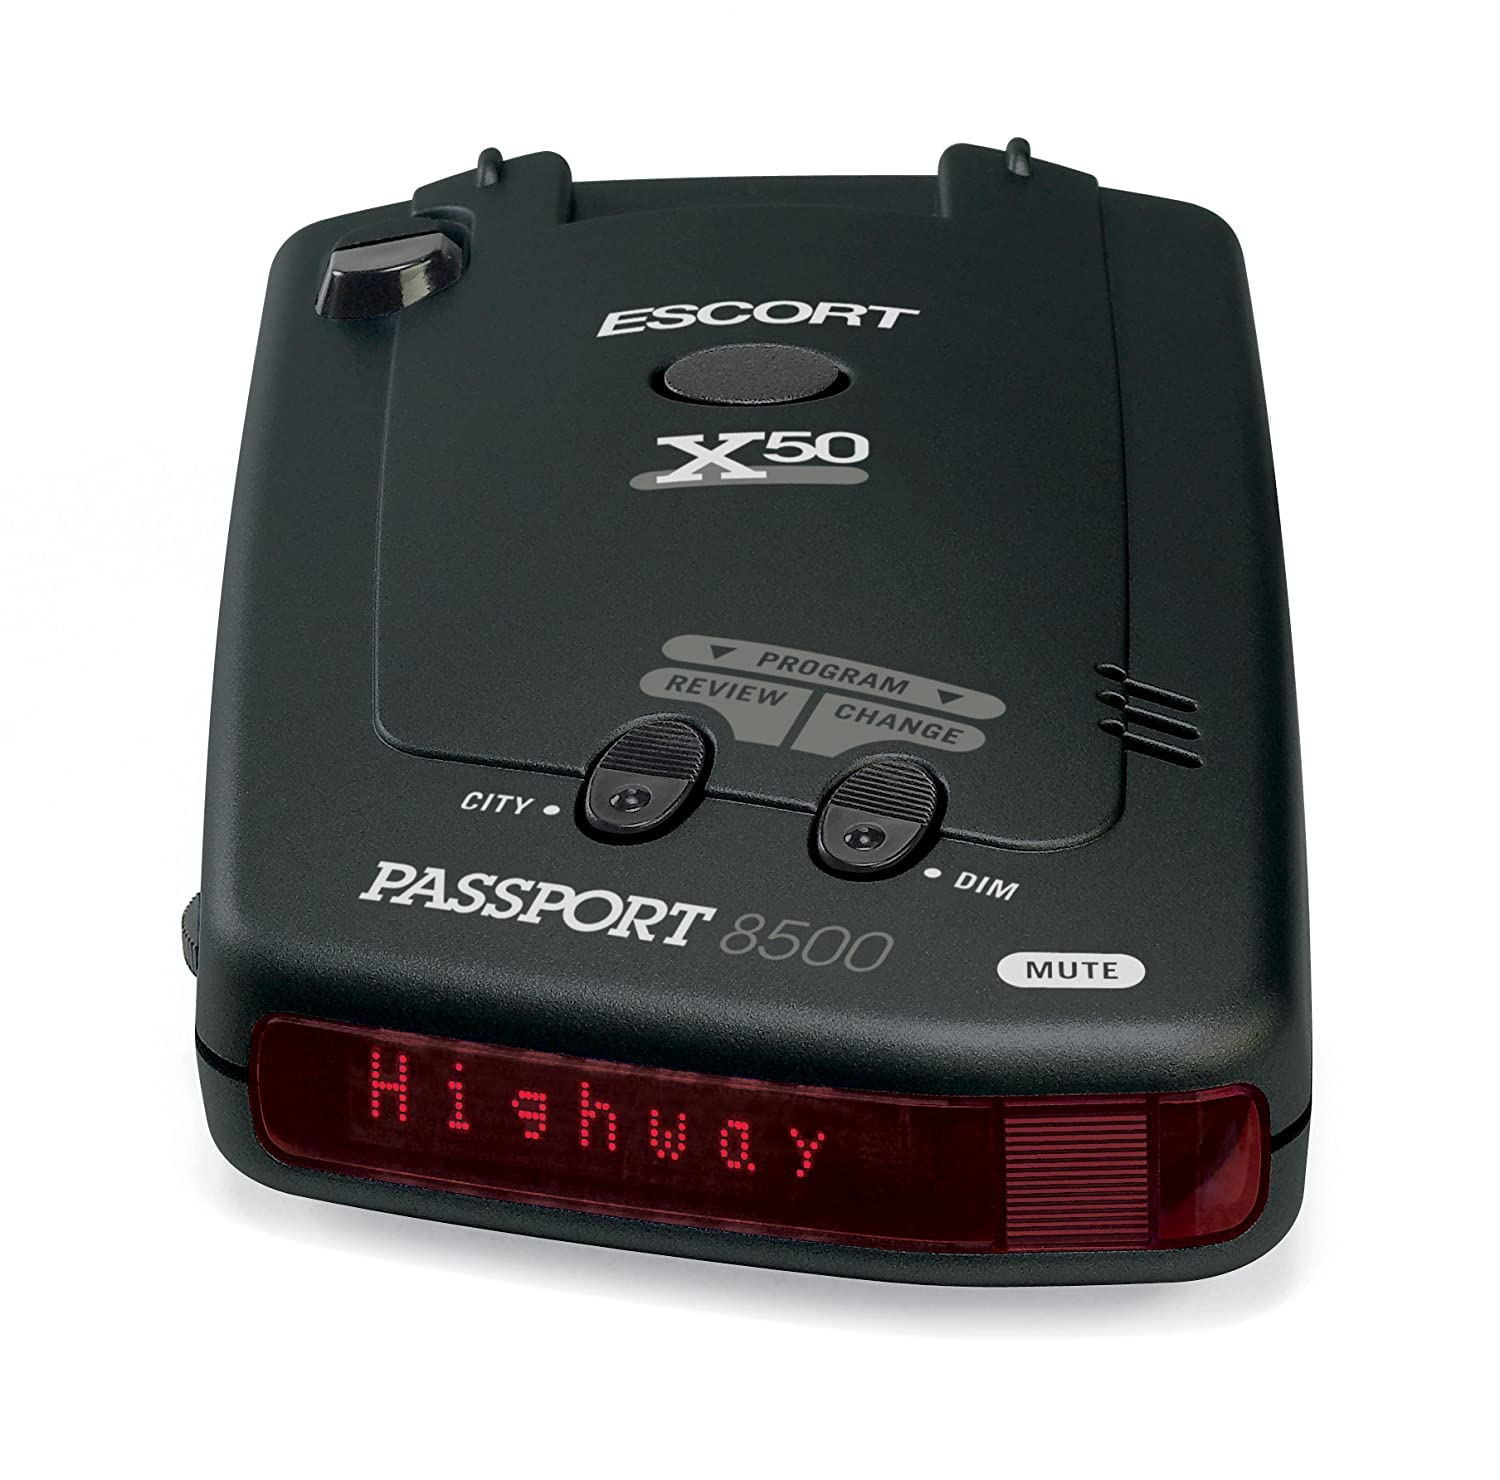 Escort Passport Black Radar Detector